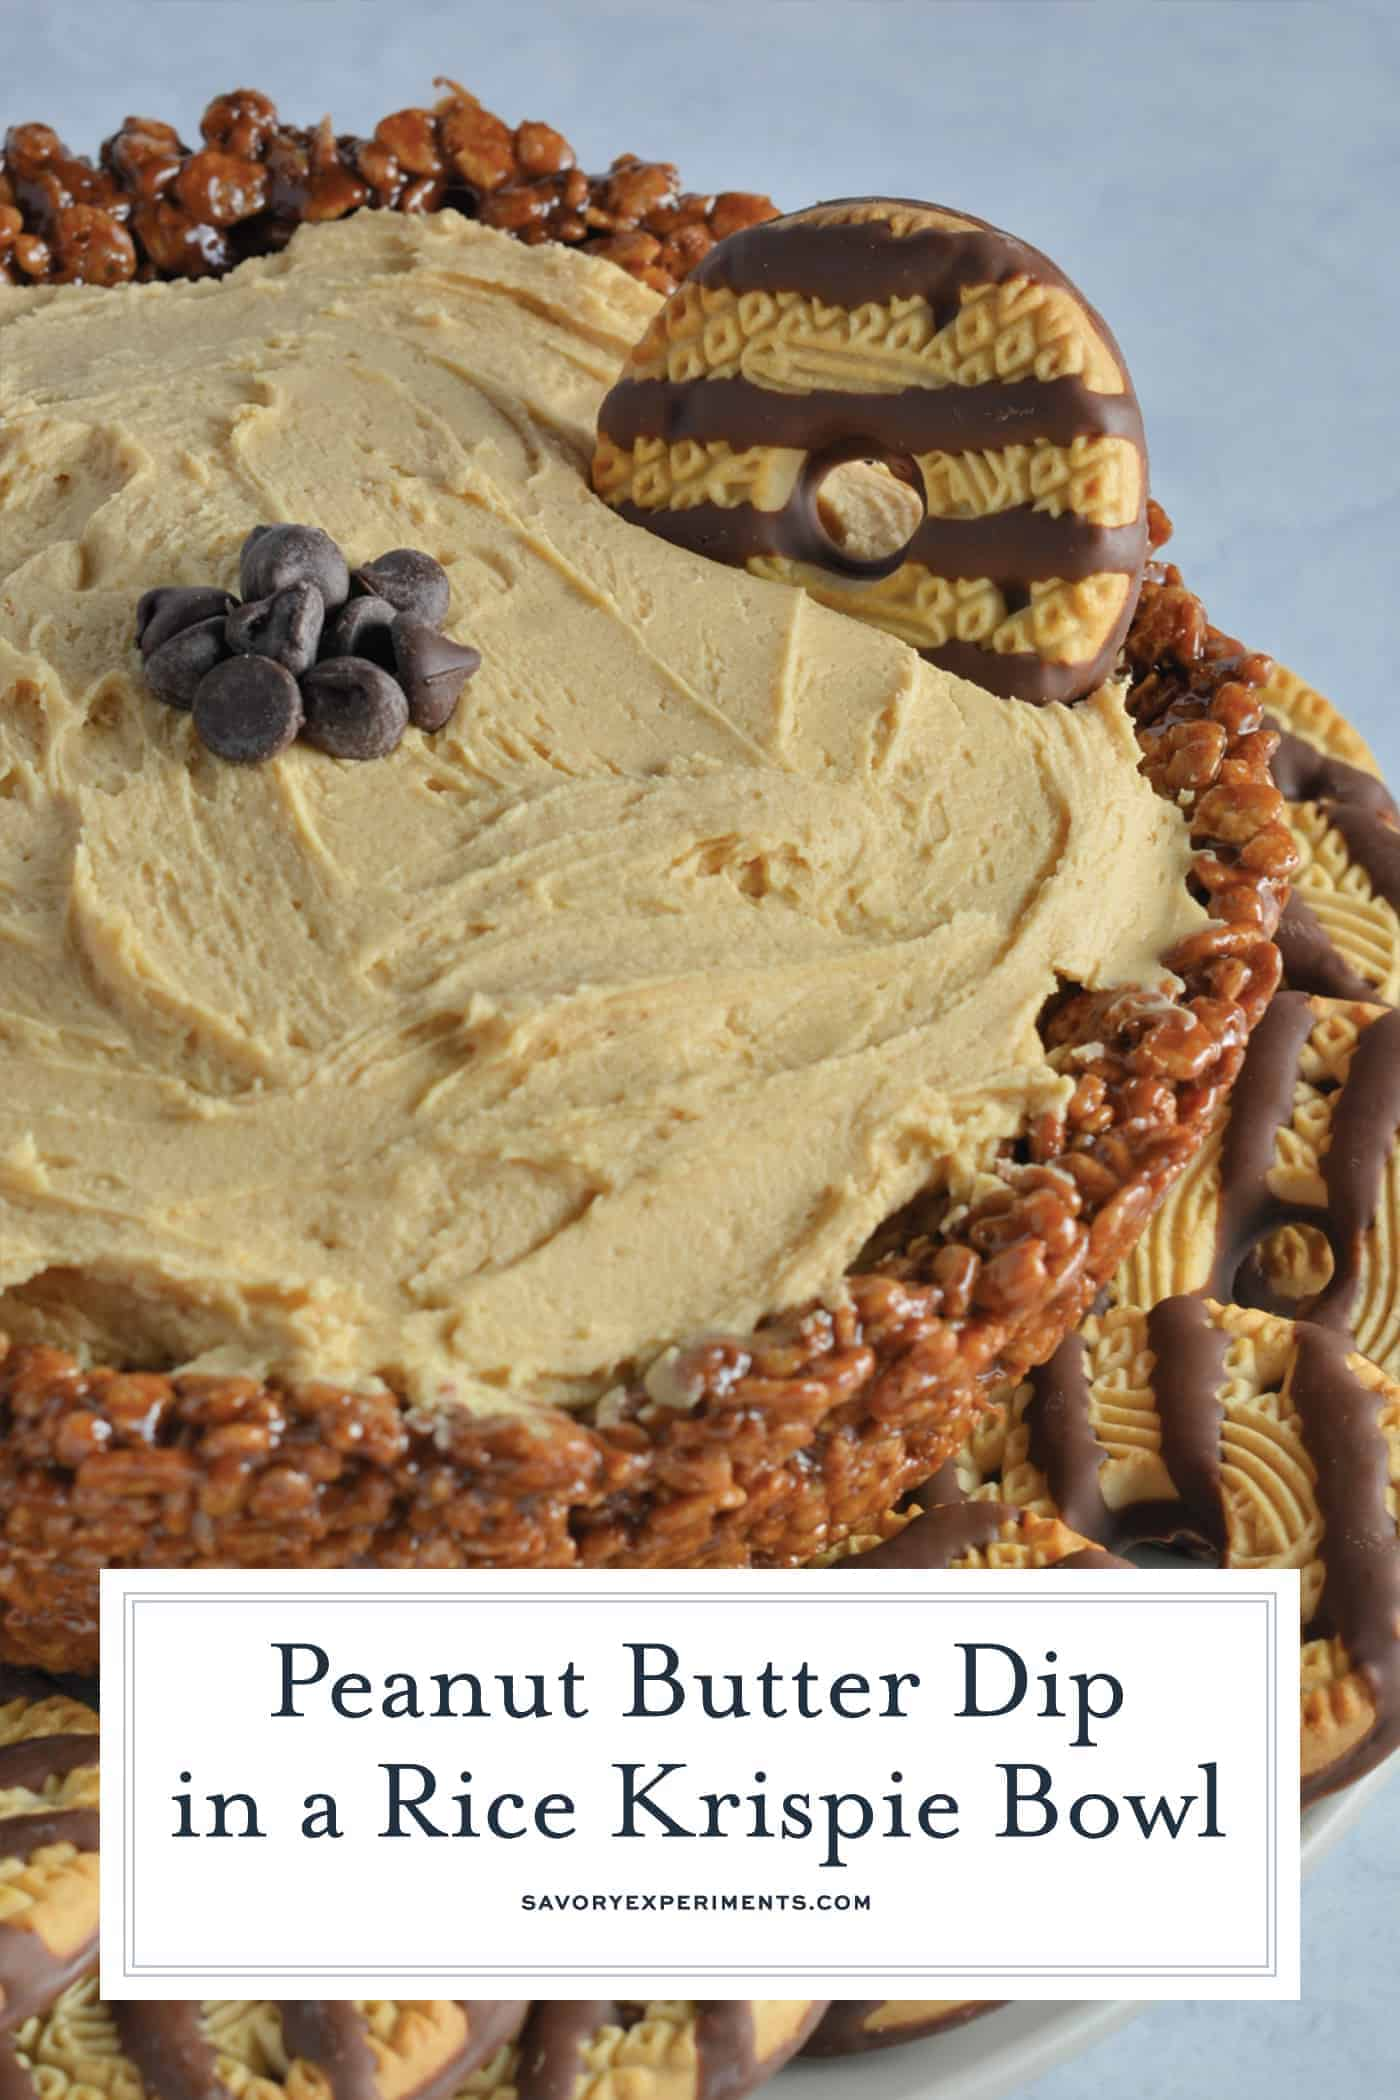 Creamy whipped peanut butter in an edible chocolate laced Rice Krispie treat bowl. The best no-bake peanut butter dessert! #peanutbutterdessert www.savoryexperiments.com